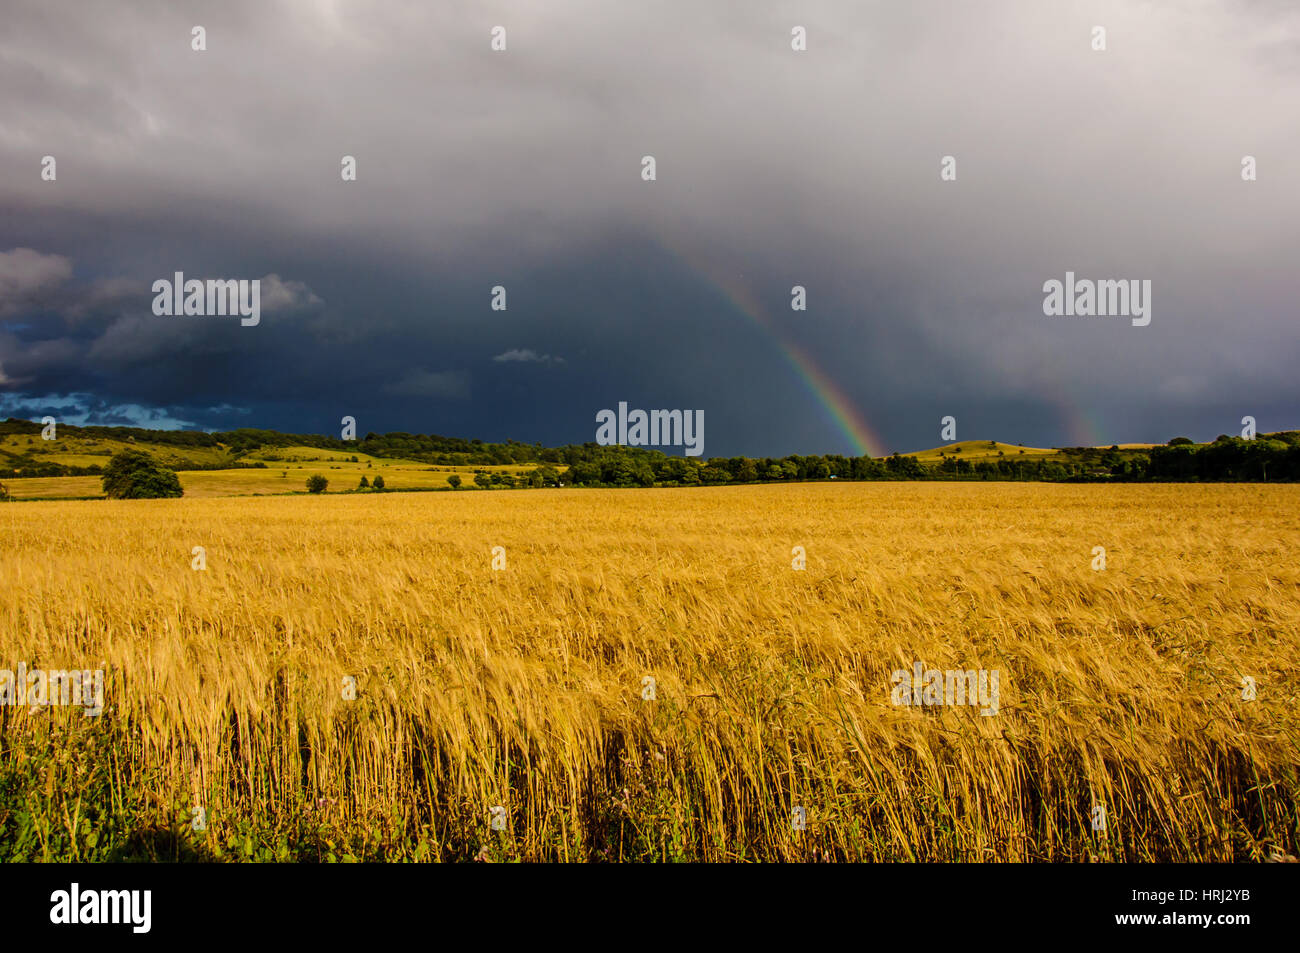 Image of two rainbows after heavy rain above corn field at Bedfordshire next to Ivinghoe village. - Stock Image